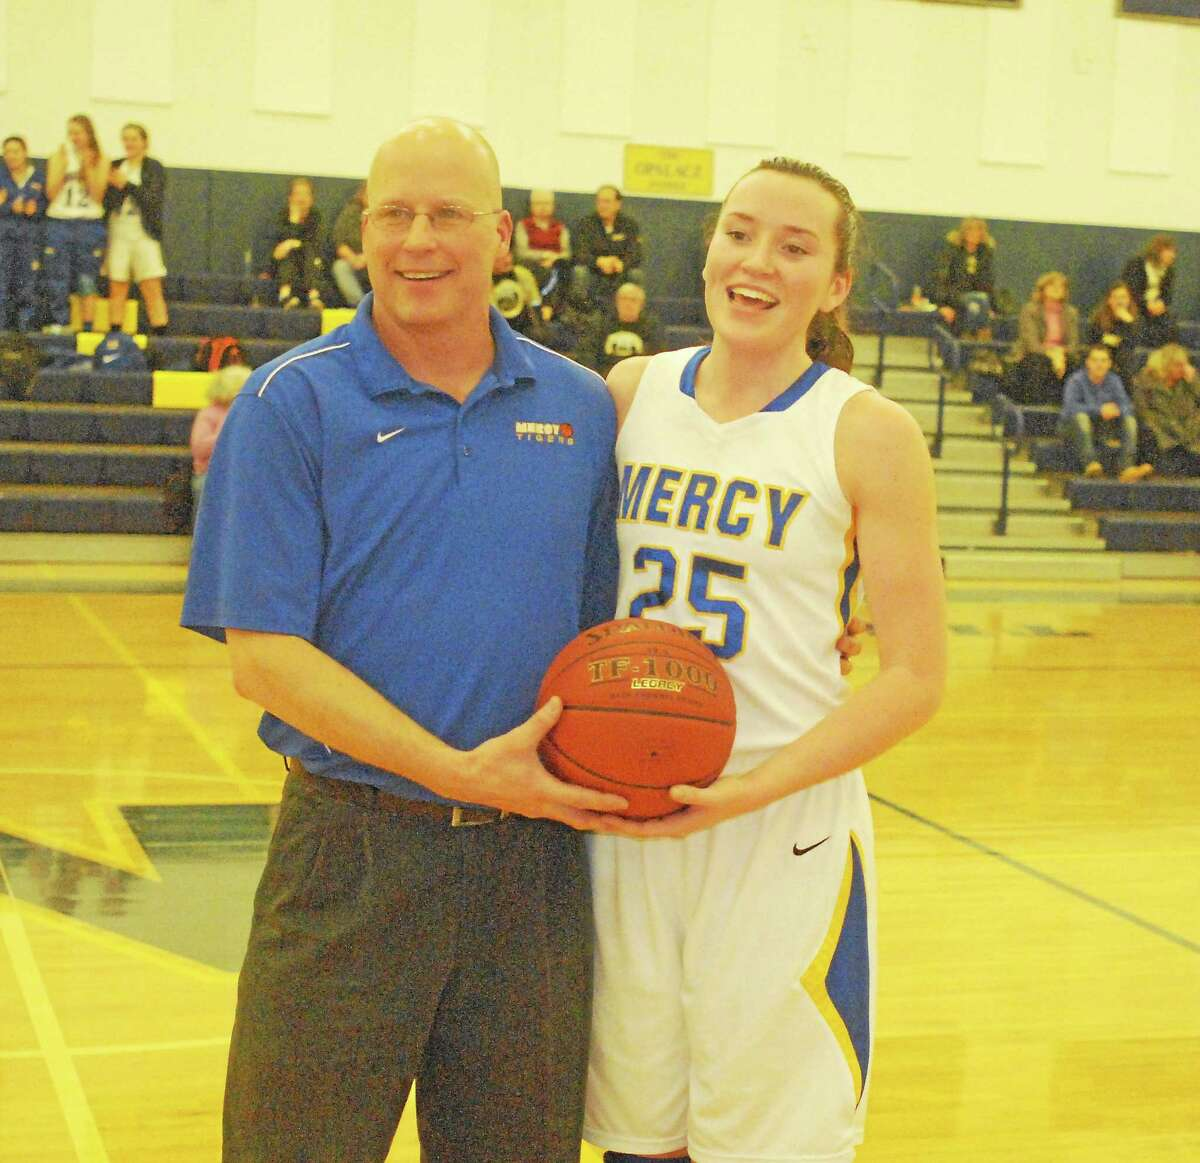 Mercy senior Maura Fitzpatrick, pictured with Tigers coach Tim Kohs, scored her 1,000th career point Thursday night in Mercy's victory over Law.